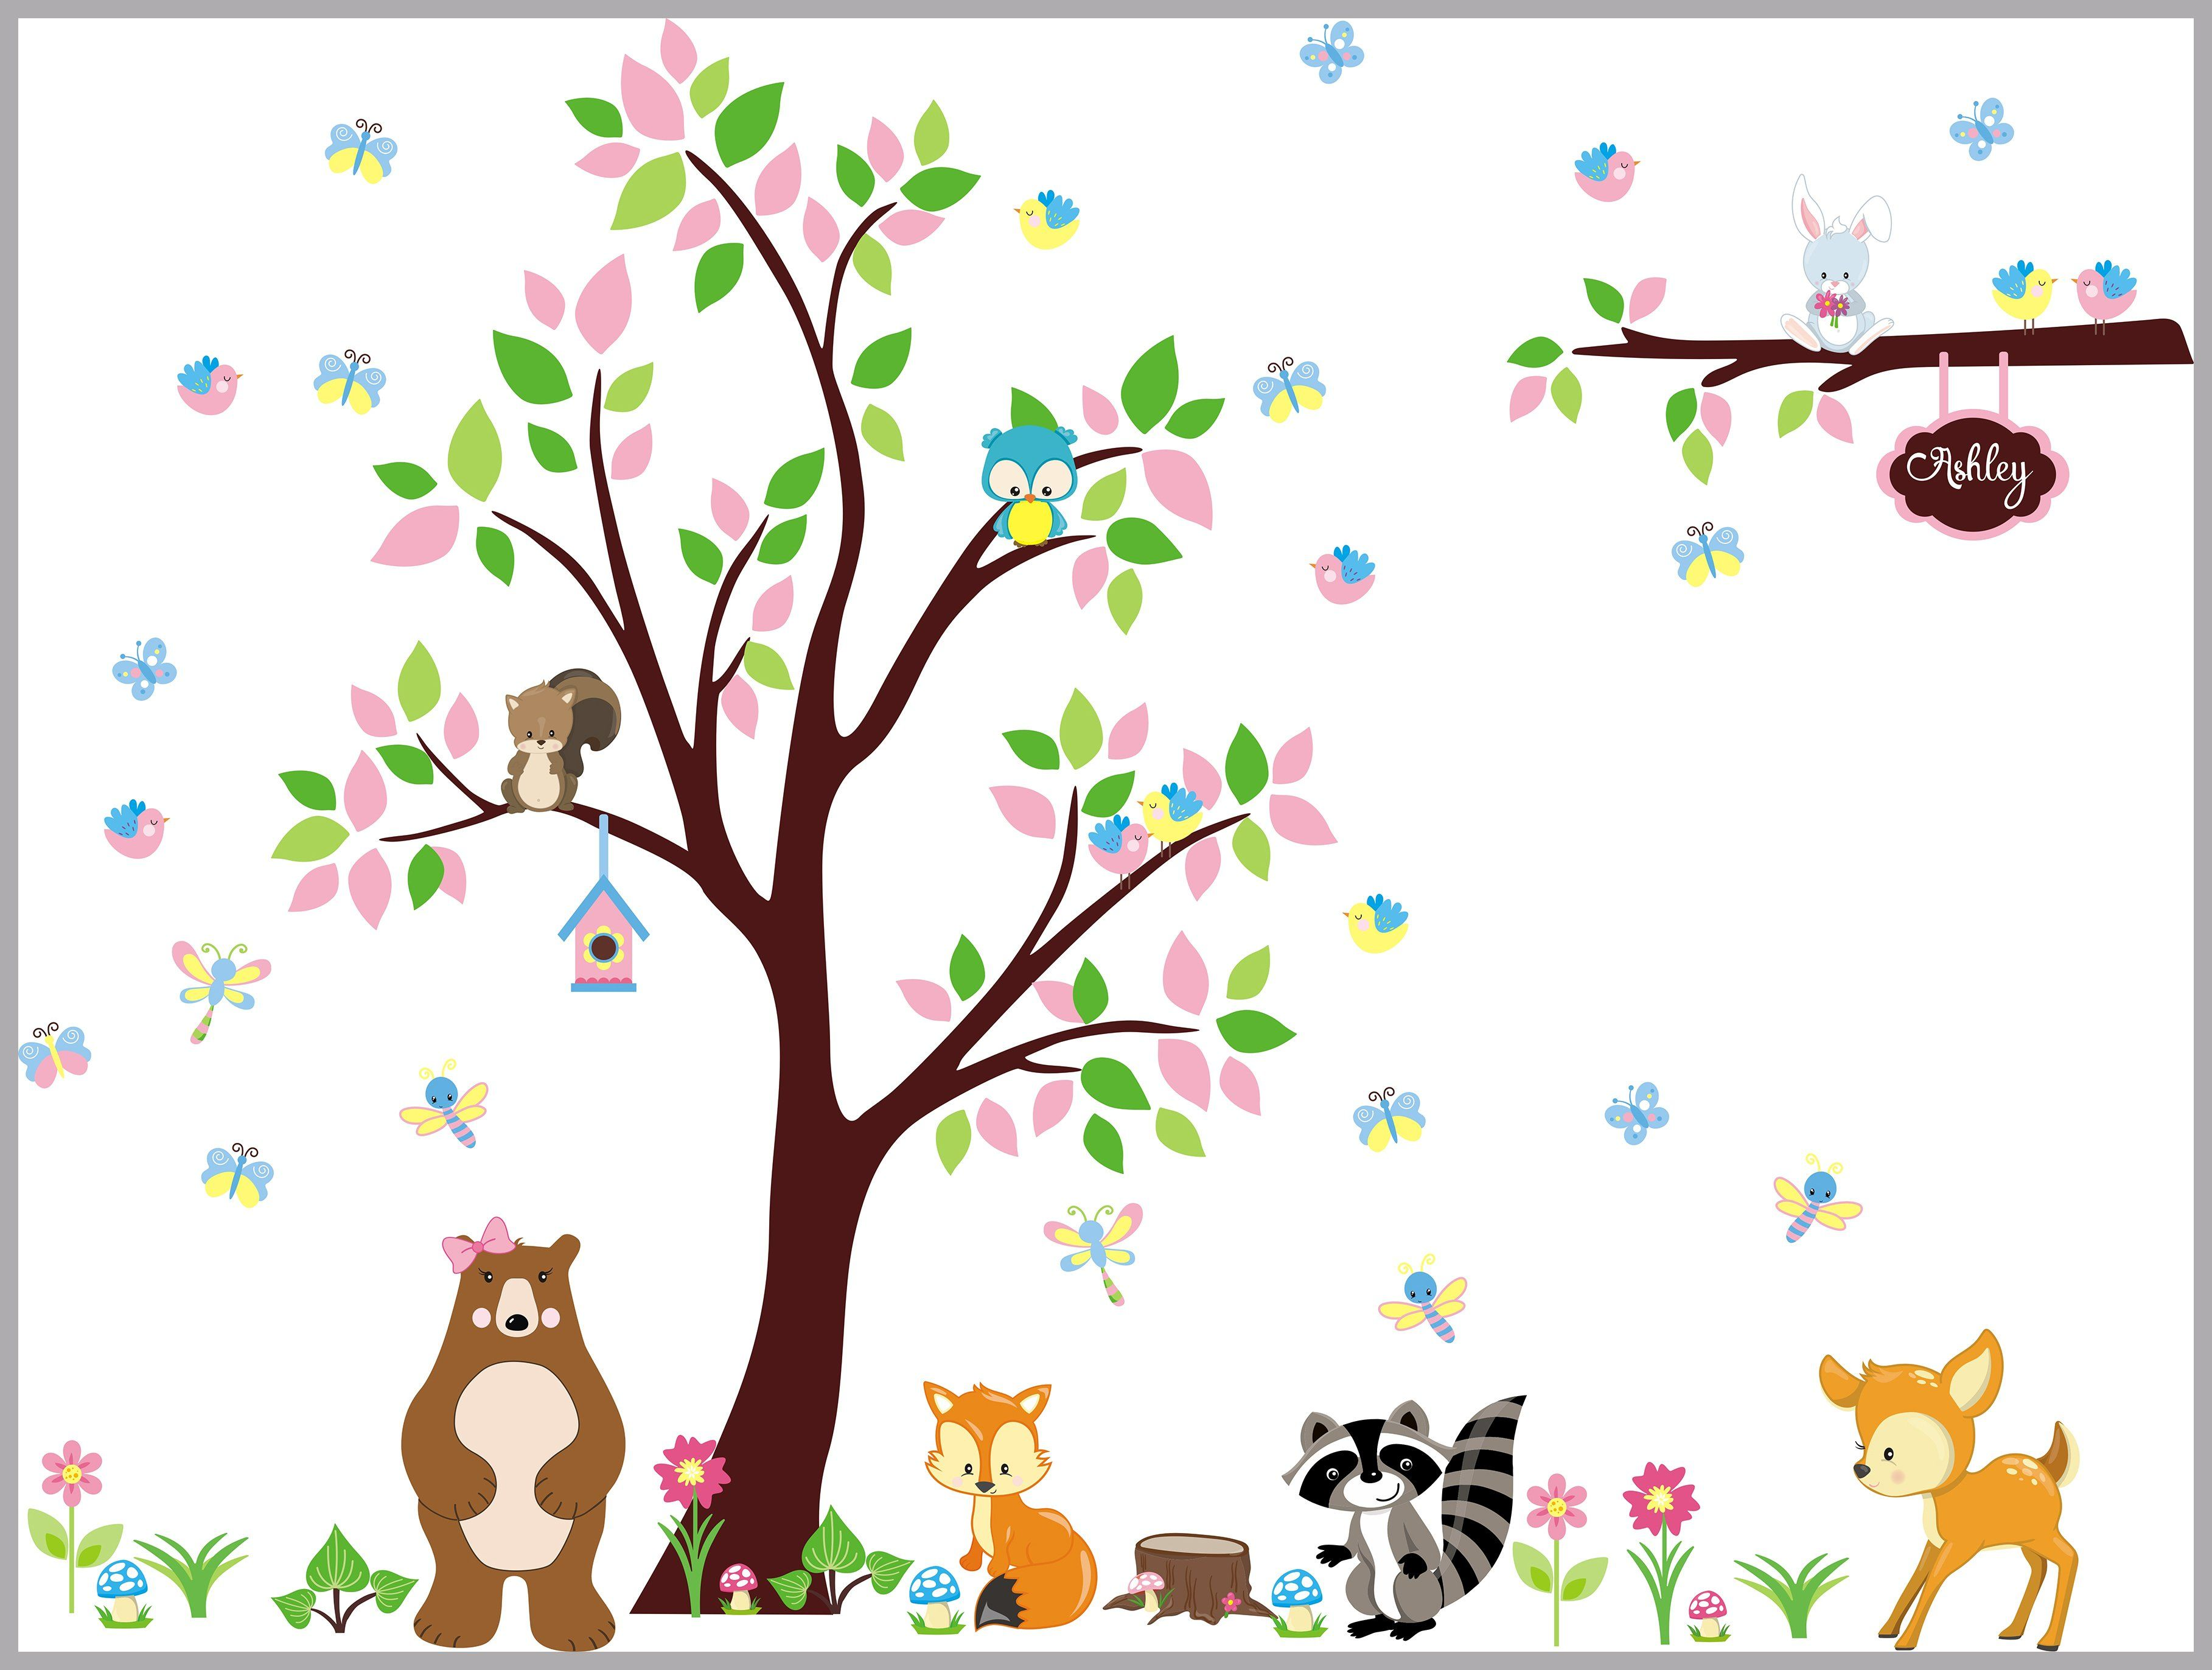 Woodland Nursery Decal   Forest Wall Decals Nursery   Nursery Wall Decal    Kids Wall Decals   Forest Decals   Woodland Decal